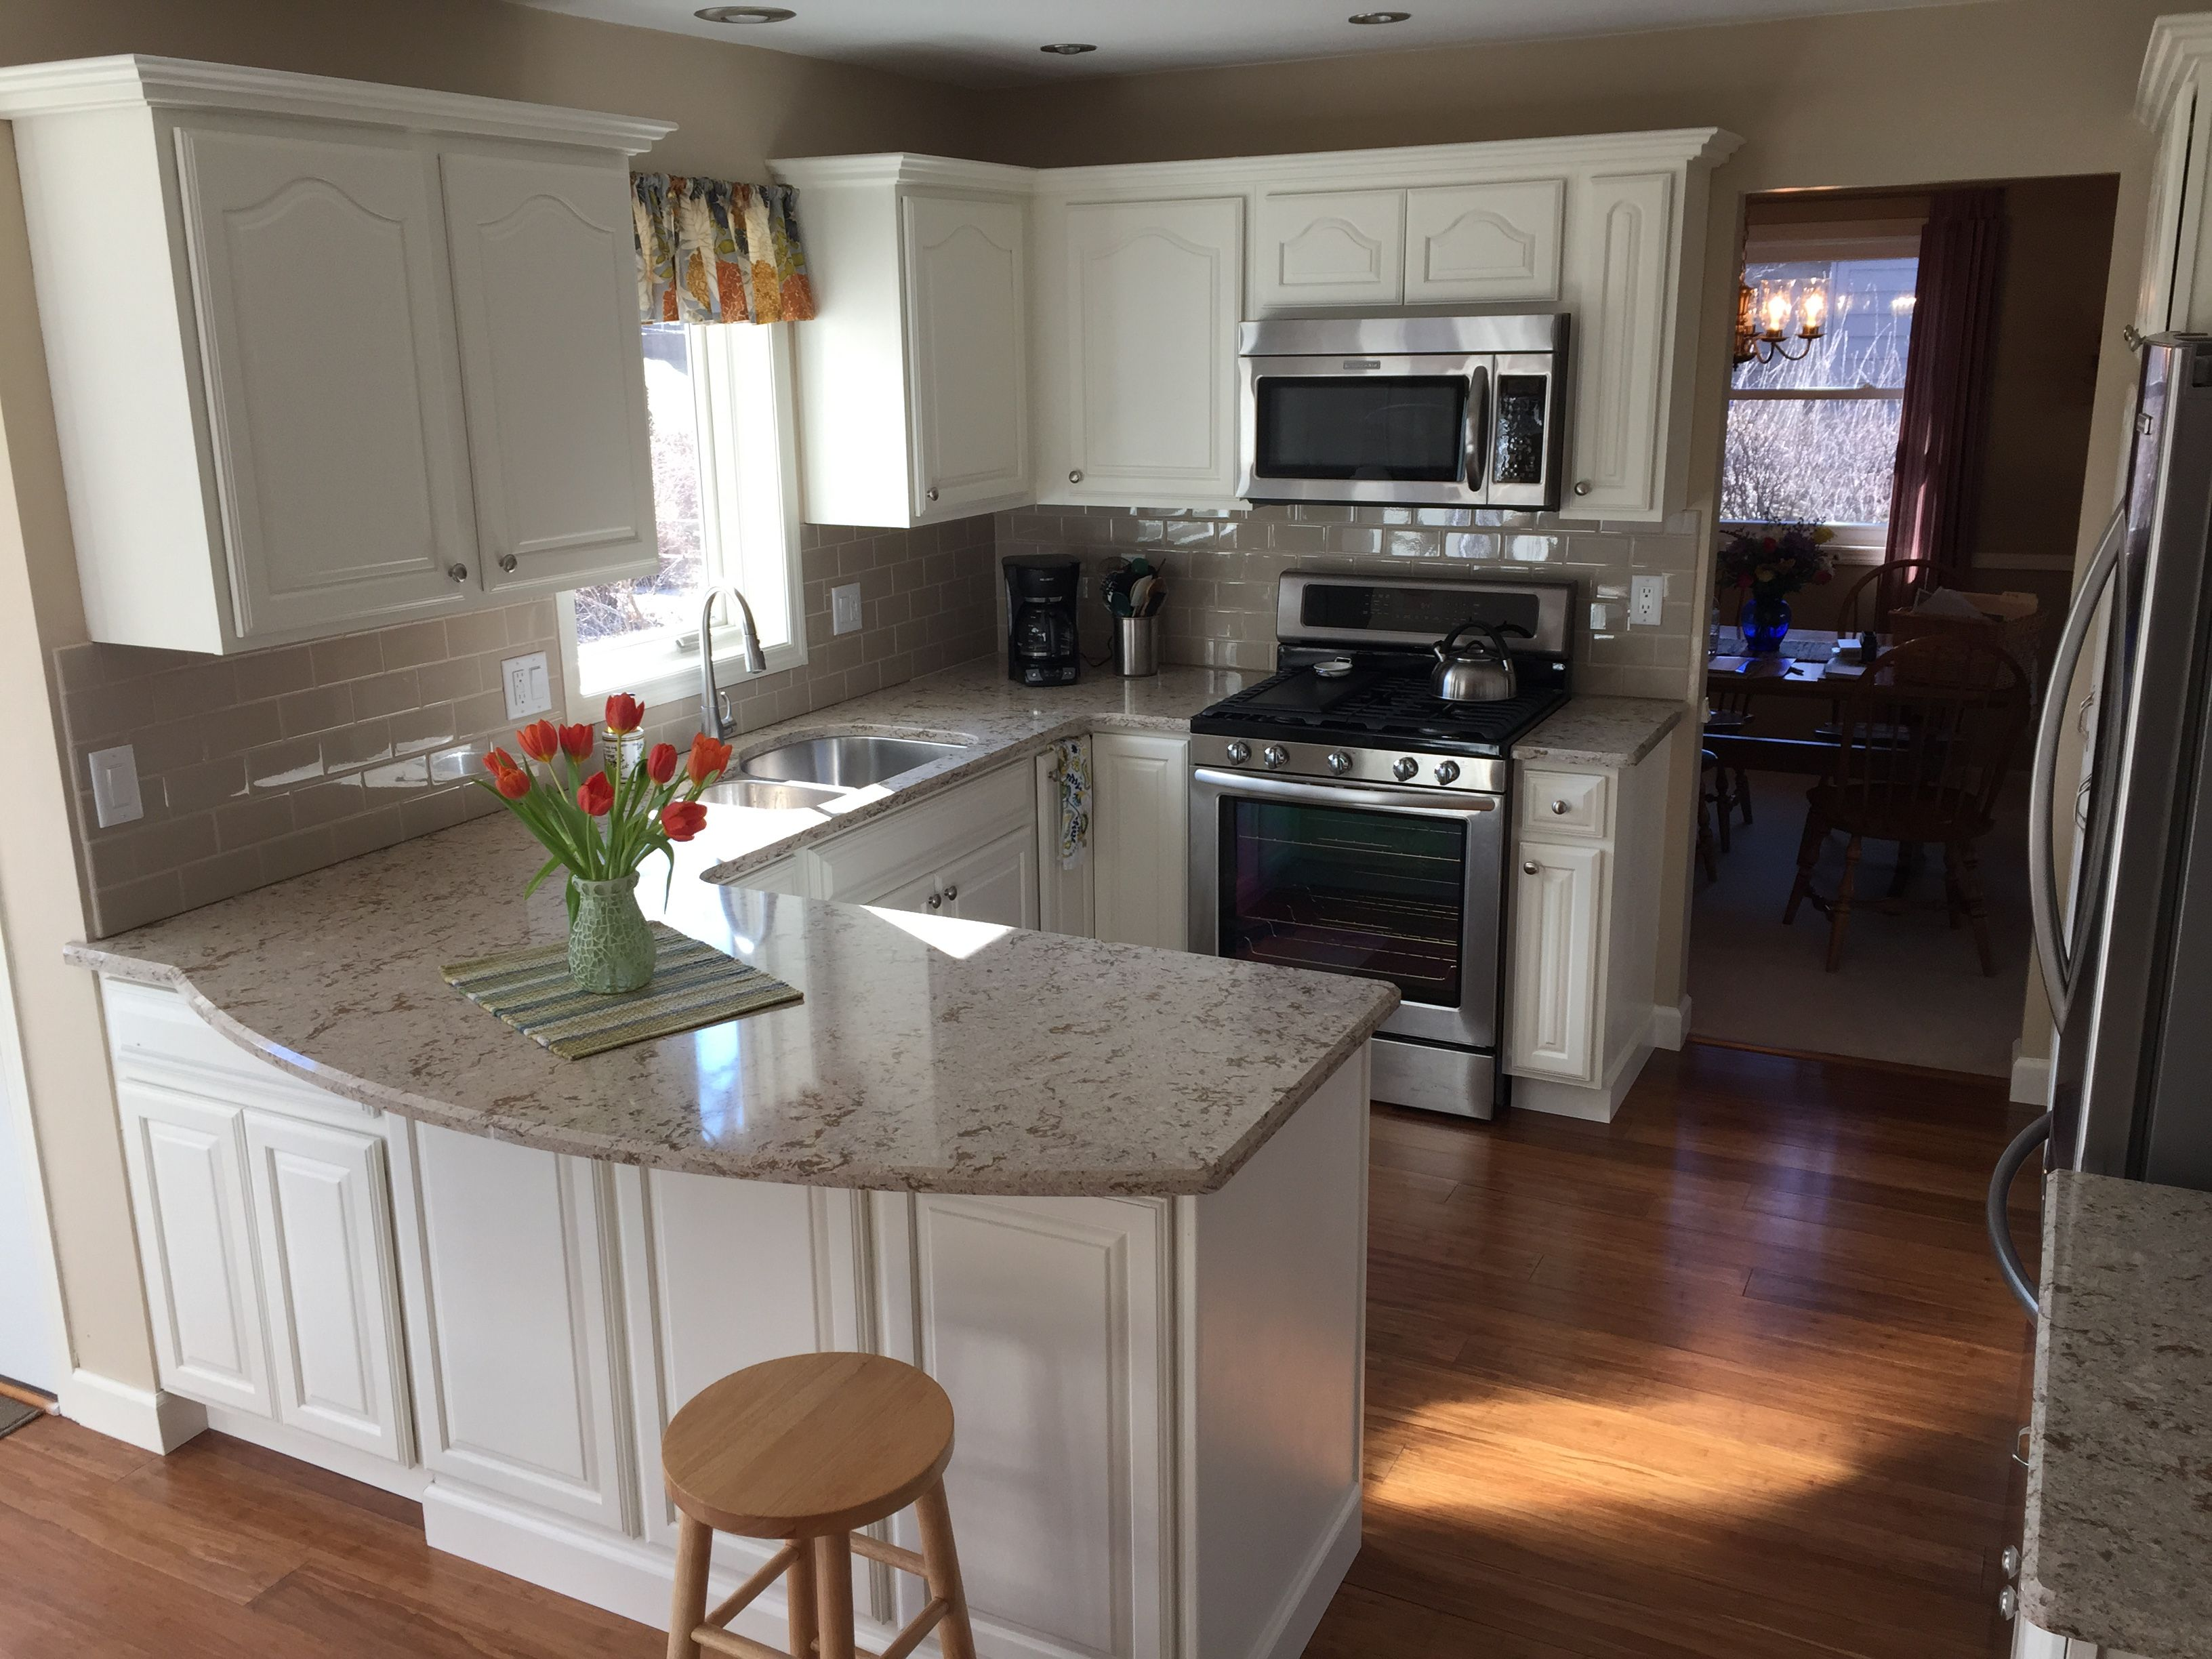 Used Oak Kitchen Cabinets Our Kitchen Remodel Oak Cabinets Painted White We Used